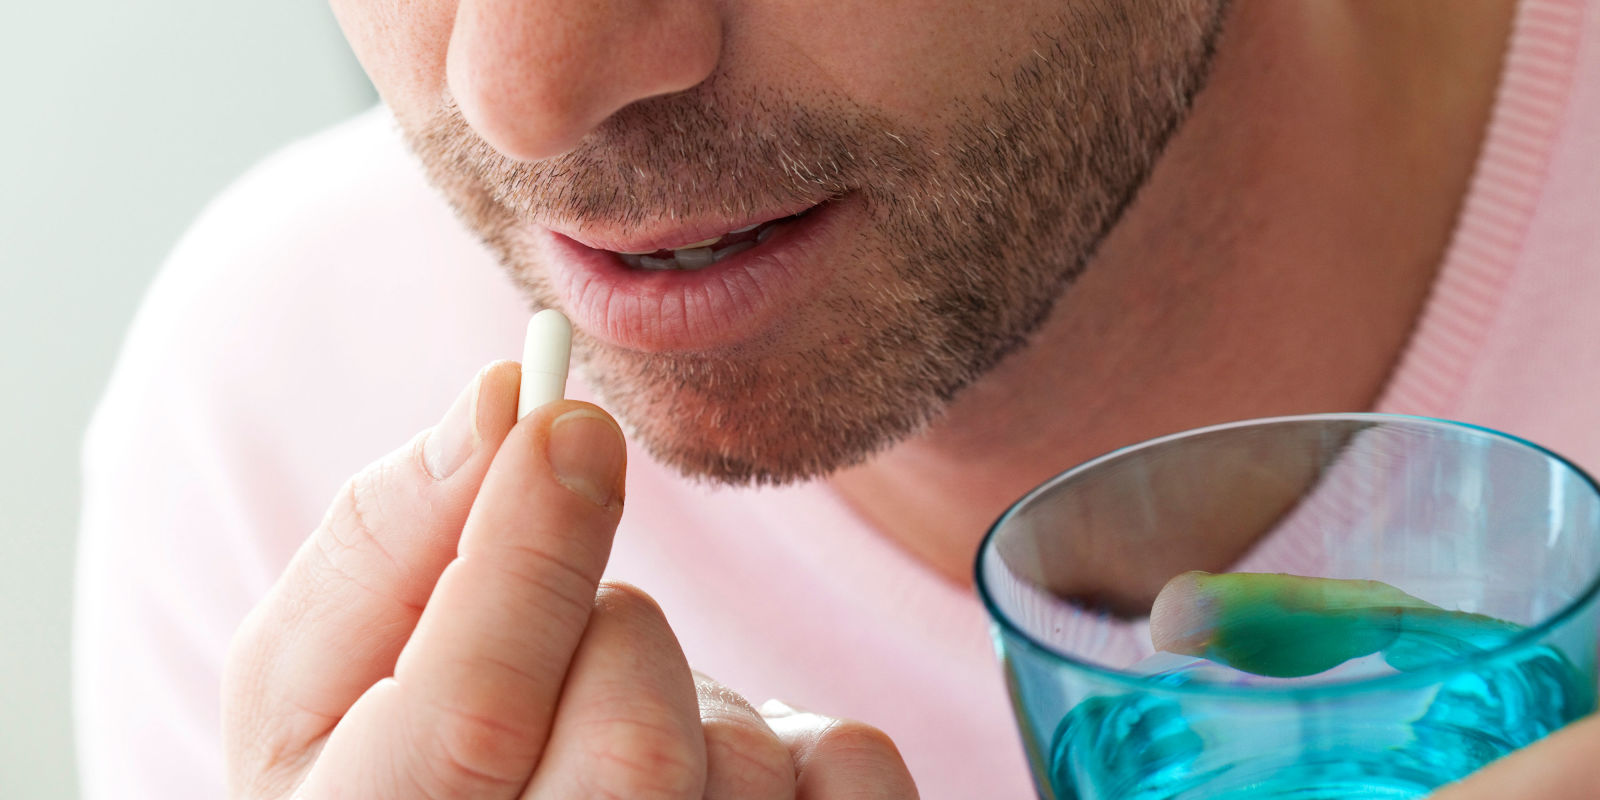 man in pink shirt taking pill medicine with water - Morning After Pill Time Frame